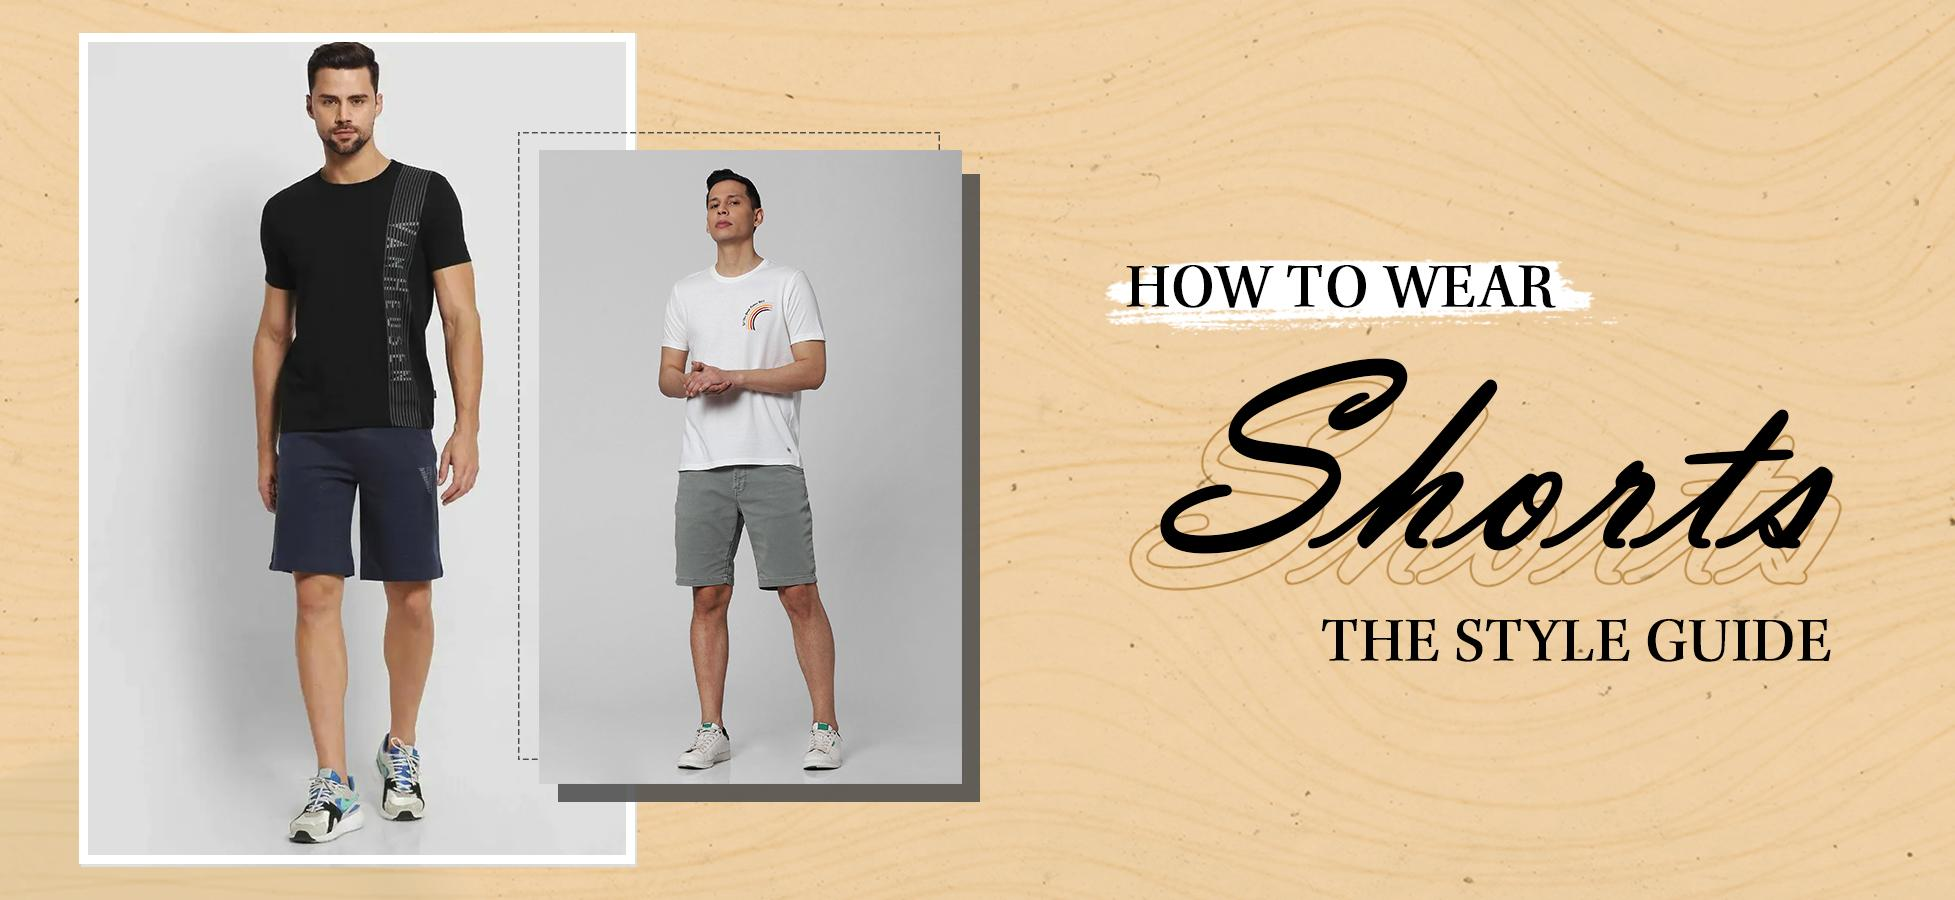 Guide to Making The Most of Men's Shorts This Season